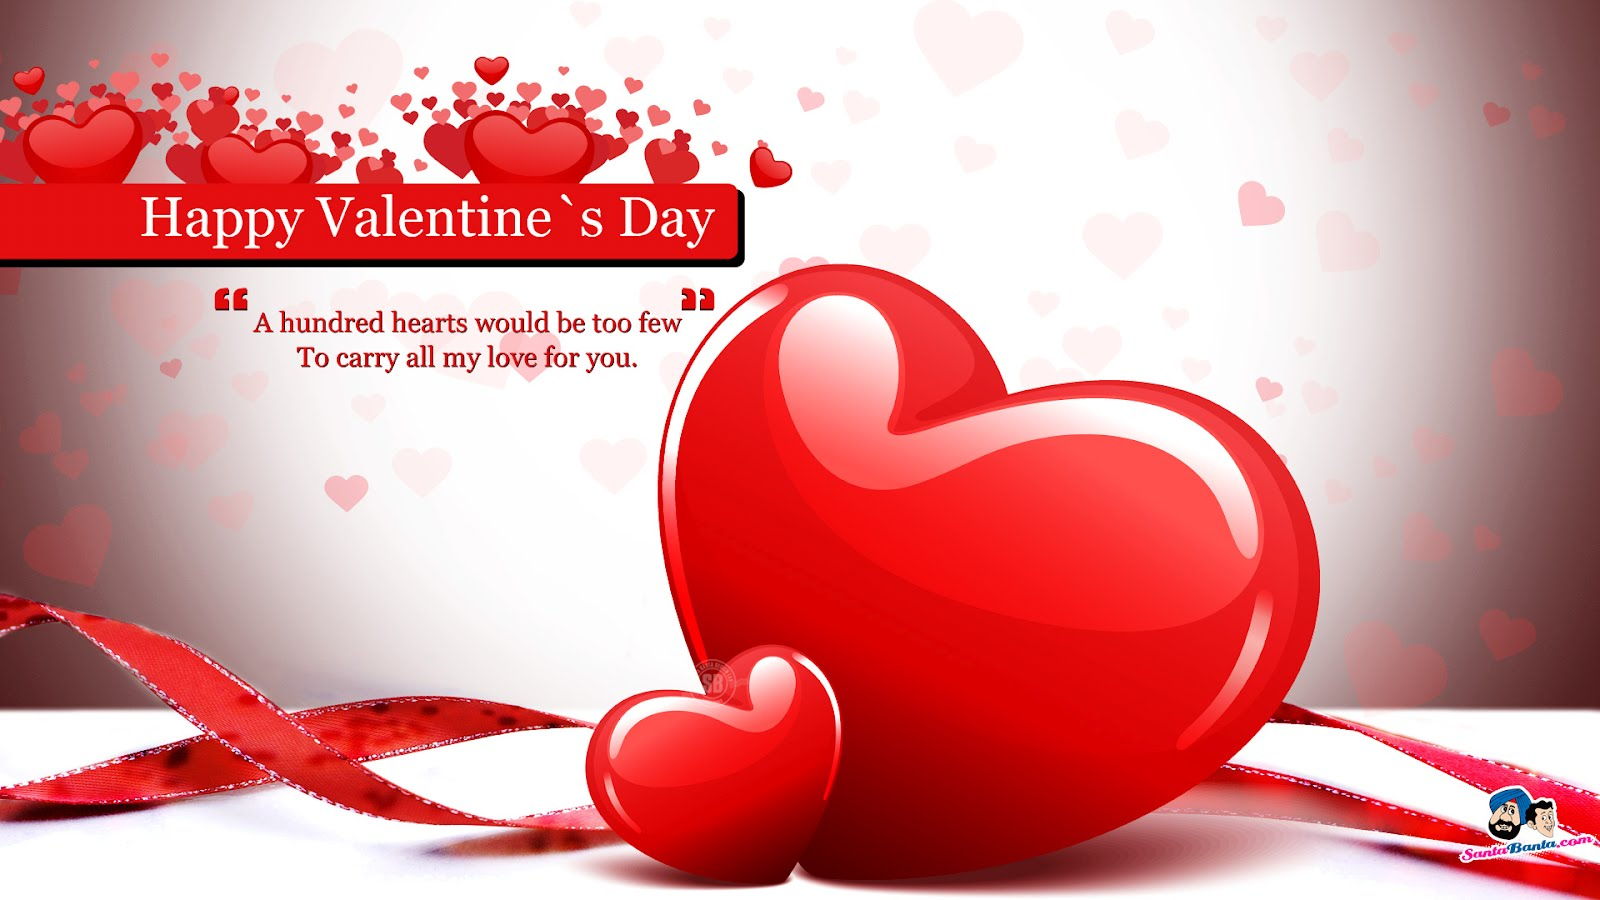 Free ecards happy valentine day happy valentine day hd ecards cards ecard greeting card wish your friends girlfriend wife girl kristyandbryce Images